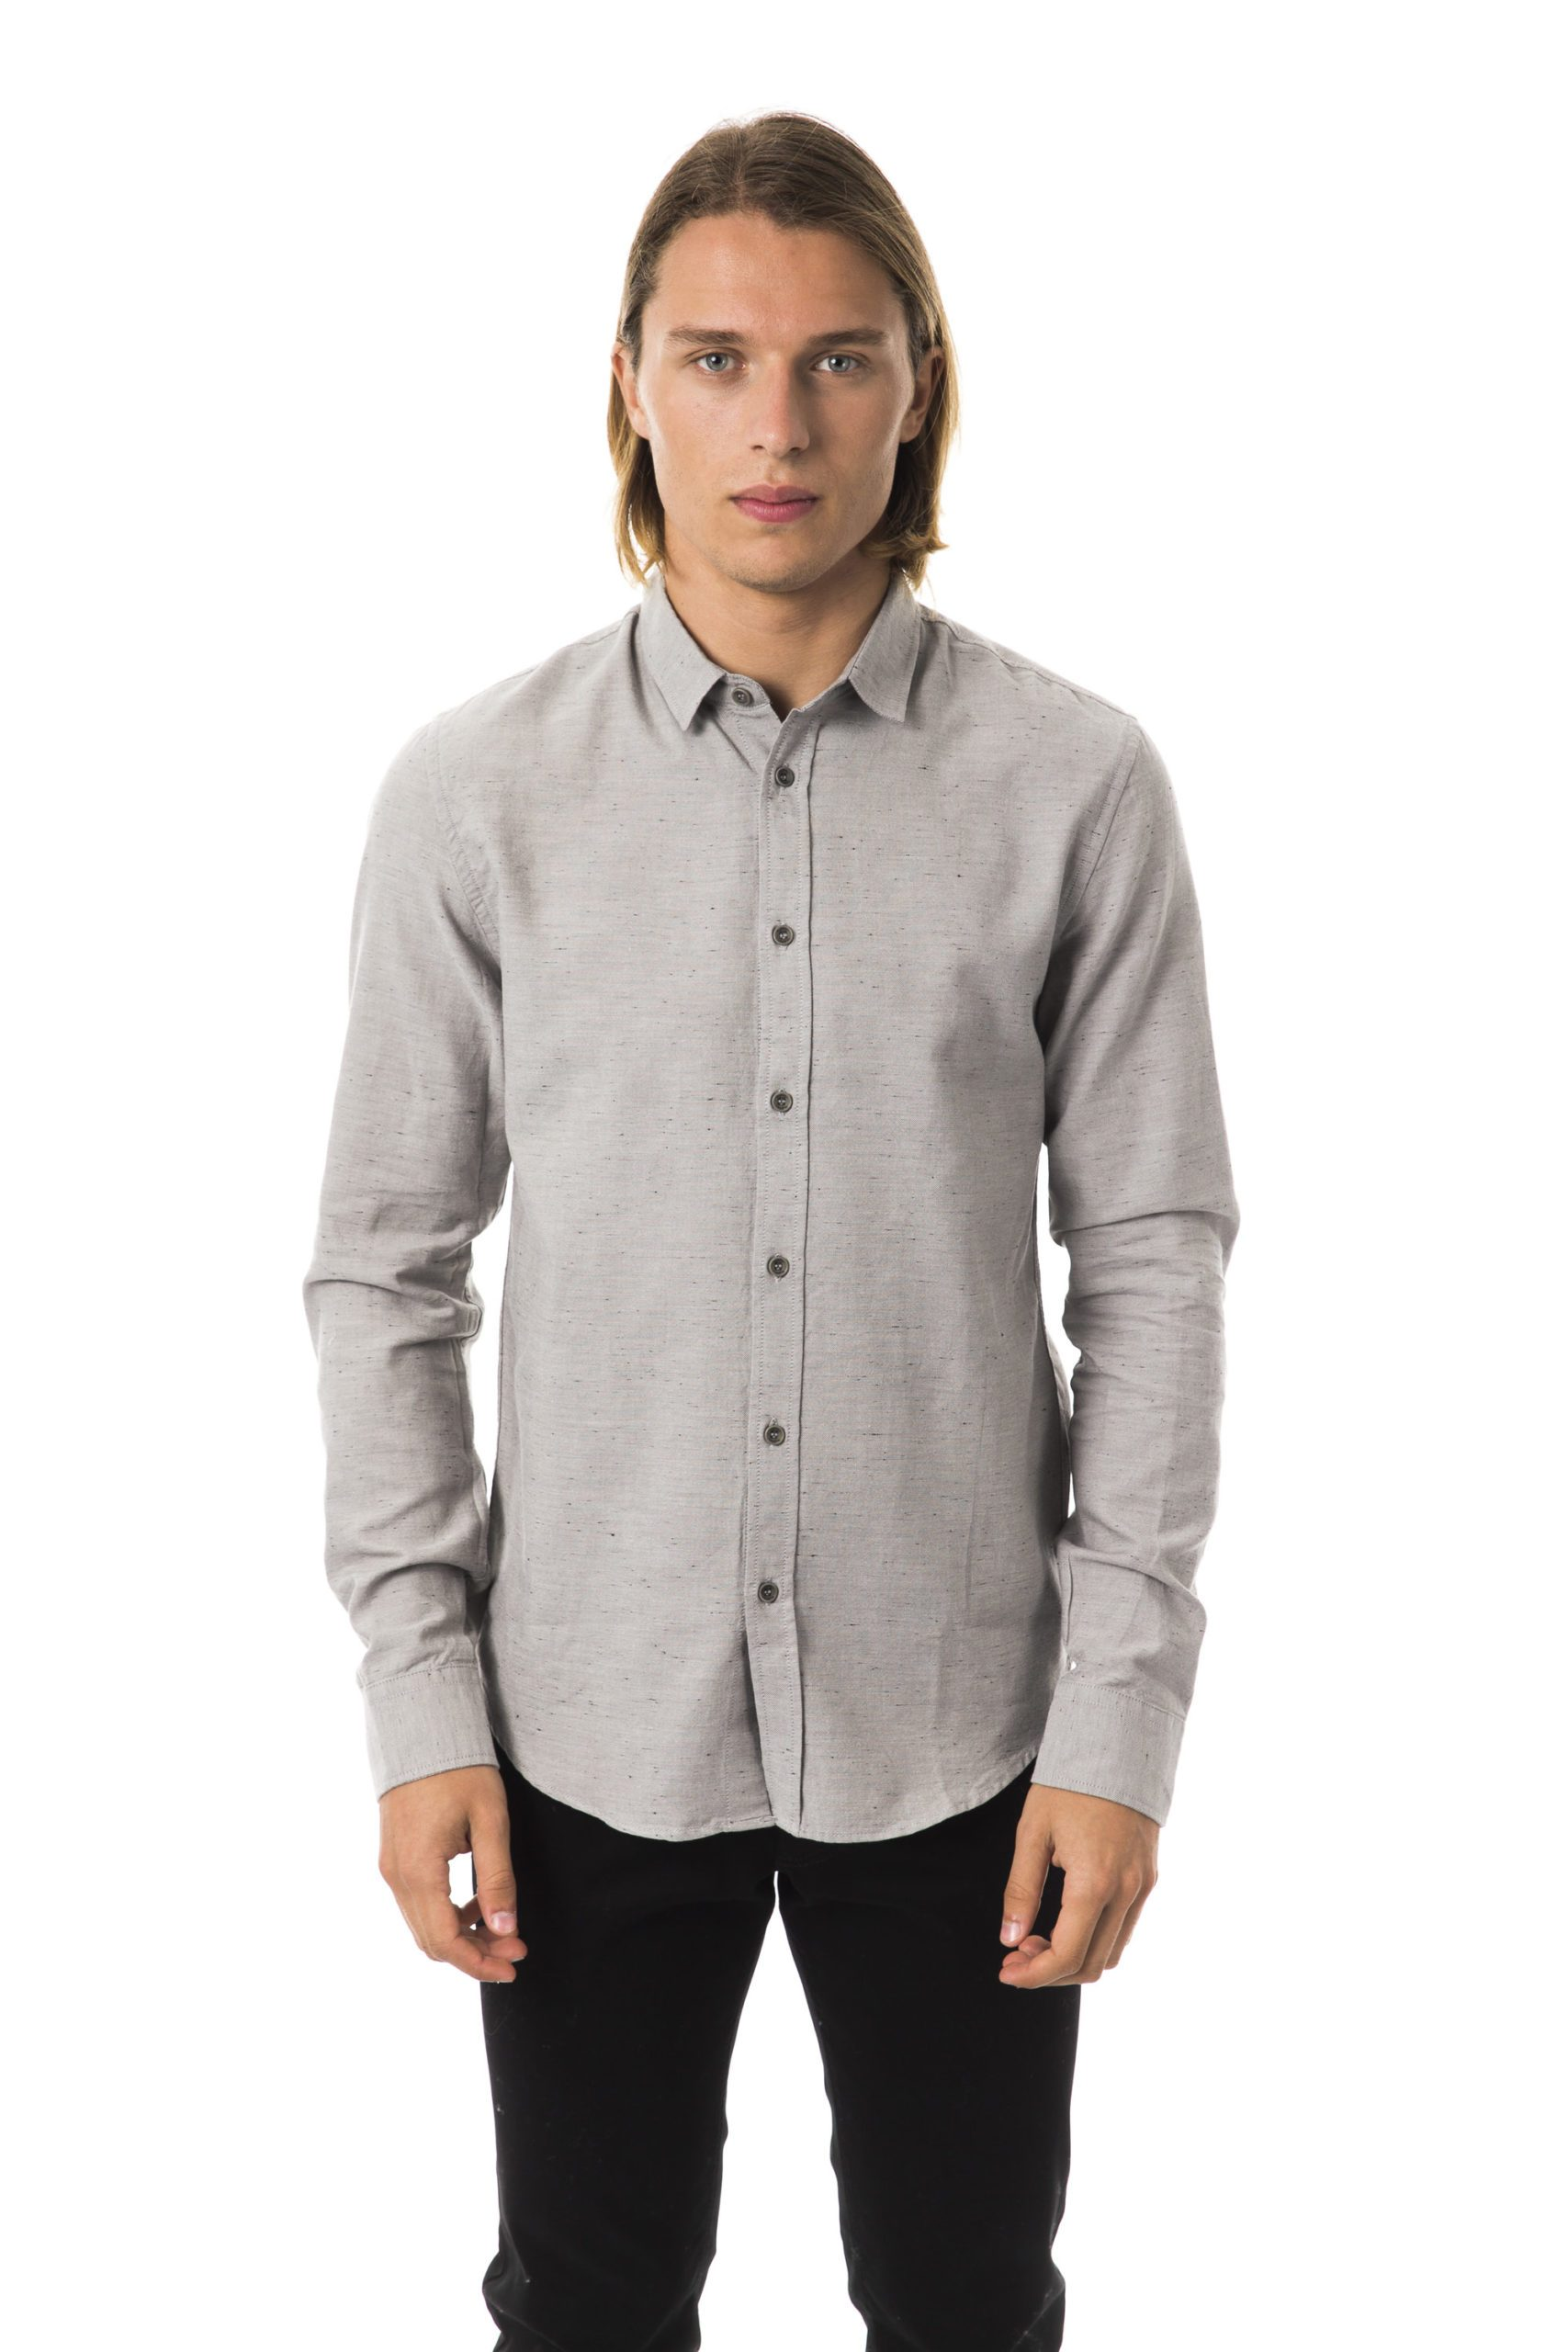 BYBLOS Men's Mastice Shirt Gray BY1394846 - M